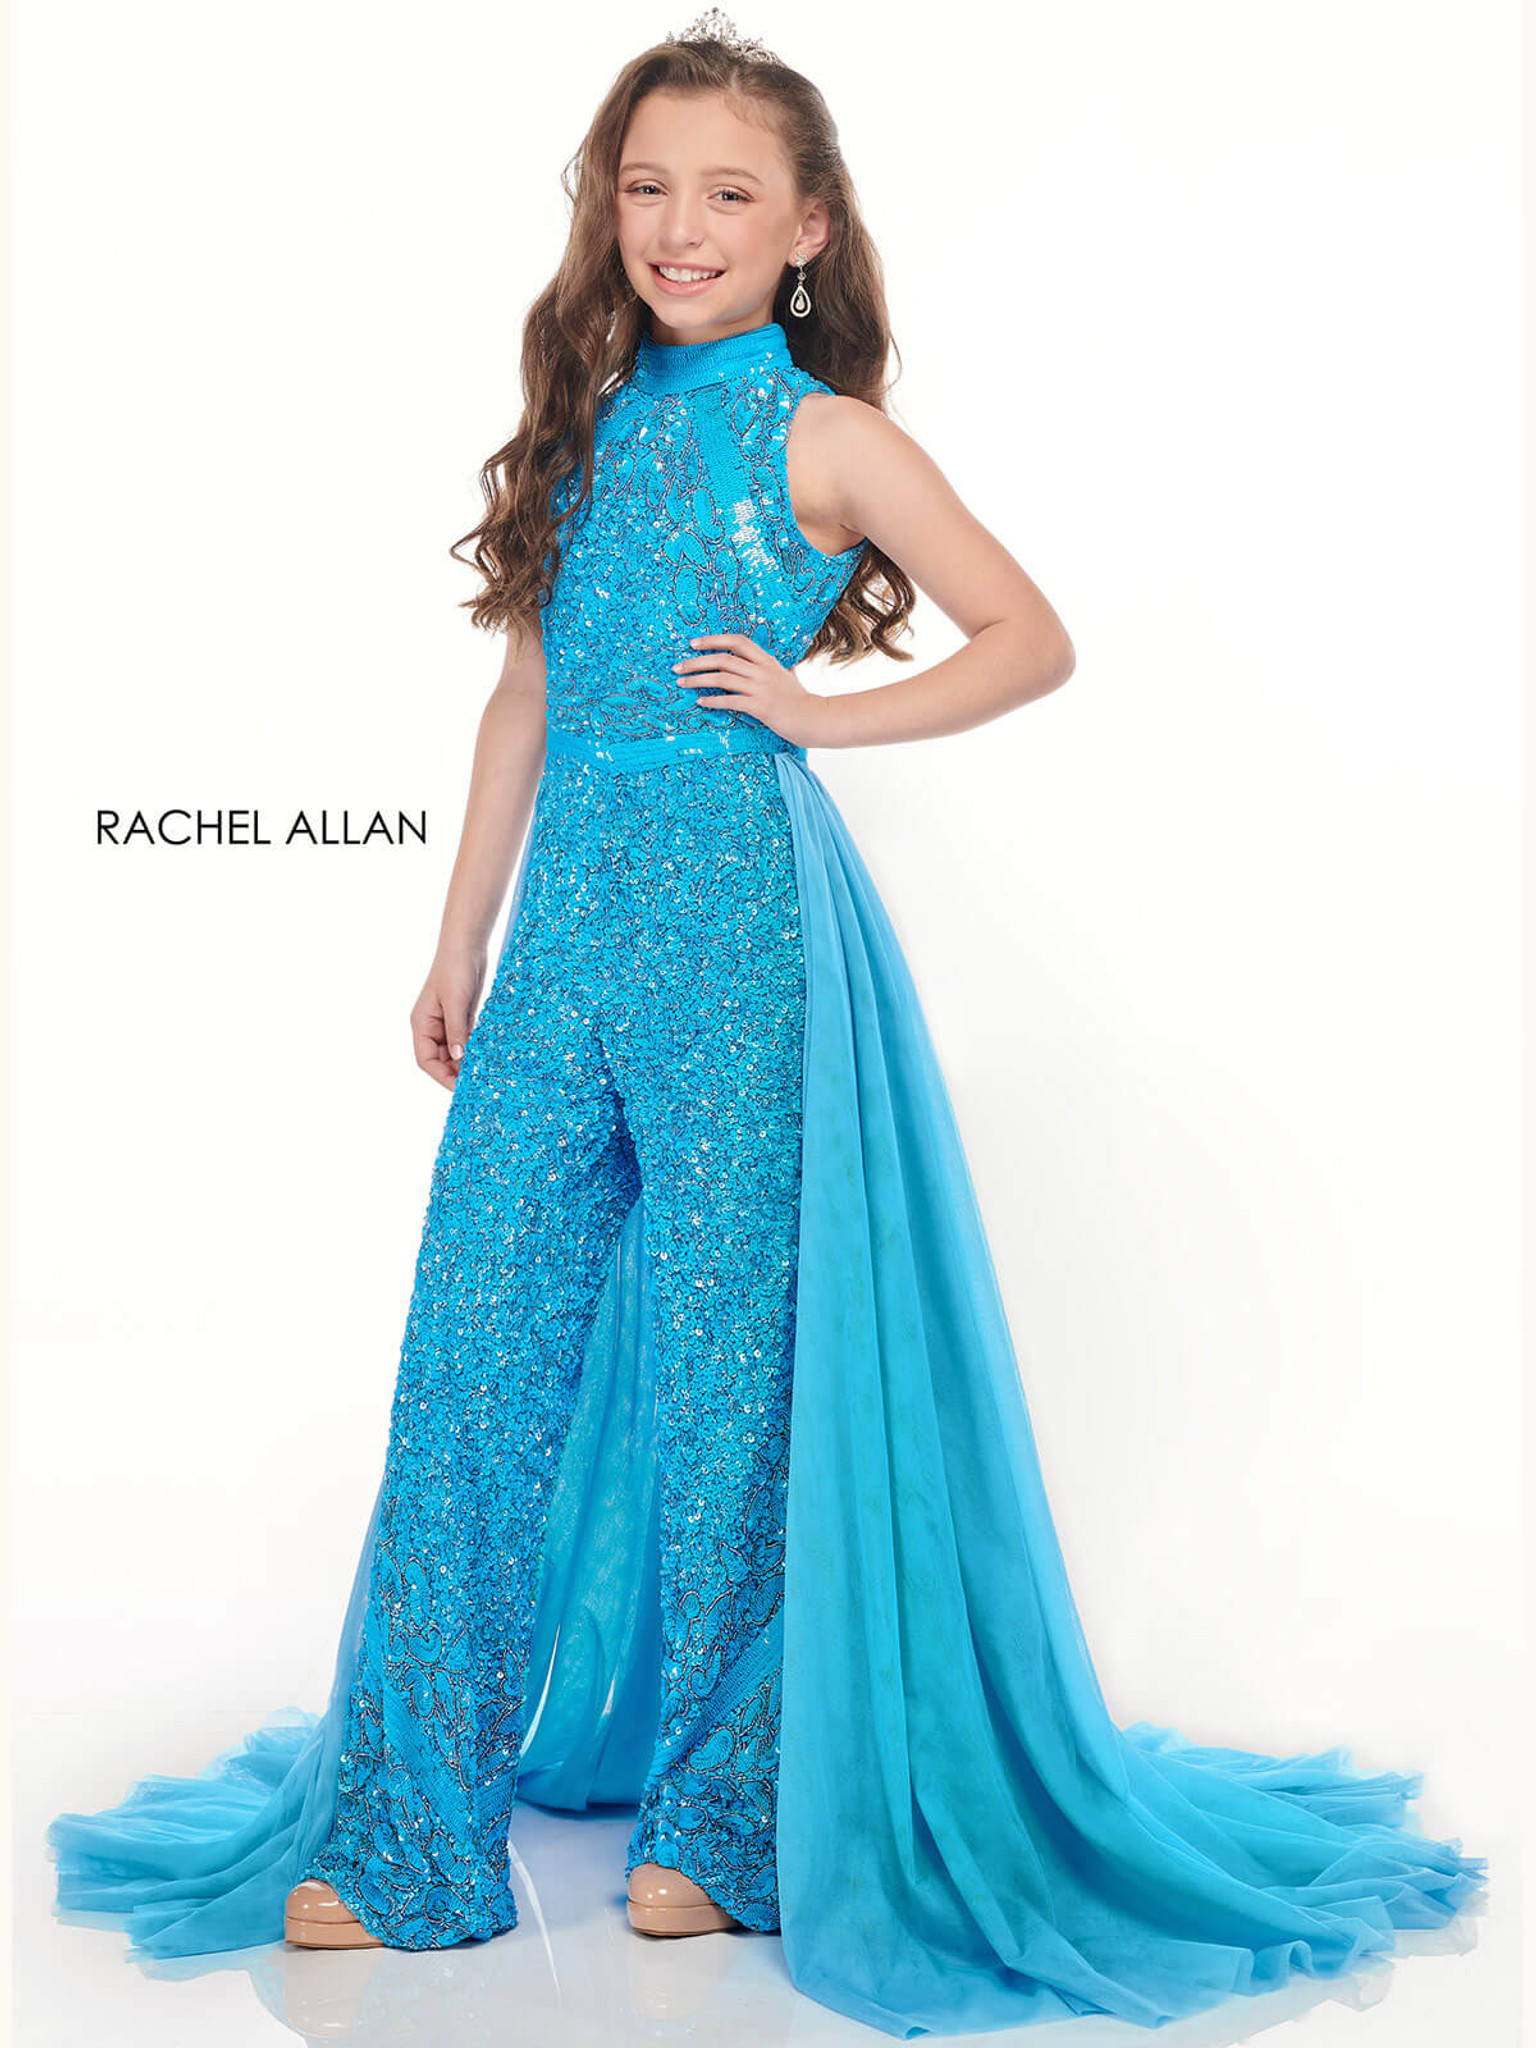 Jumpsuit Girls Pageant Dress Perfect Angels 10008